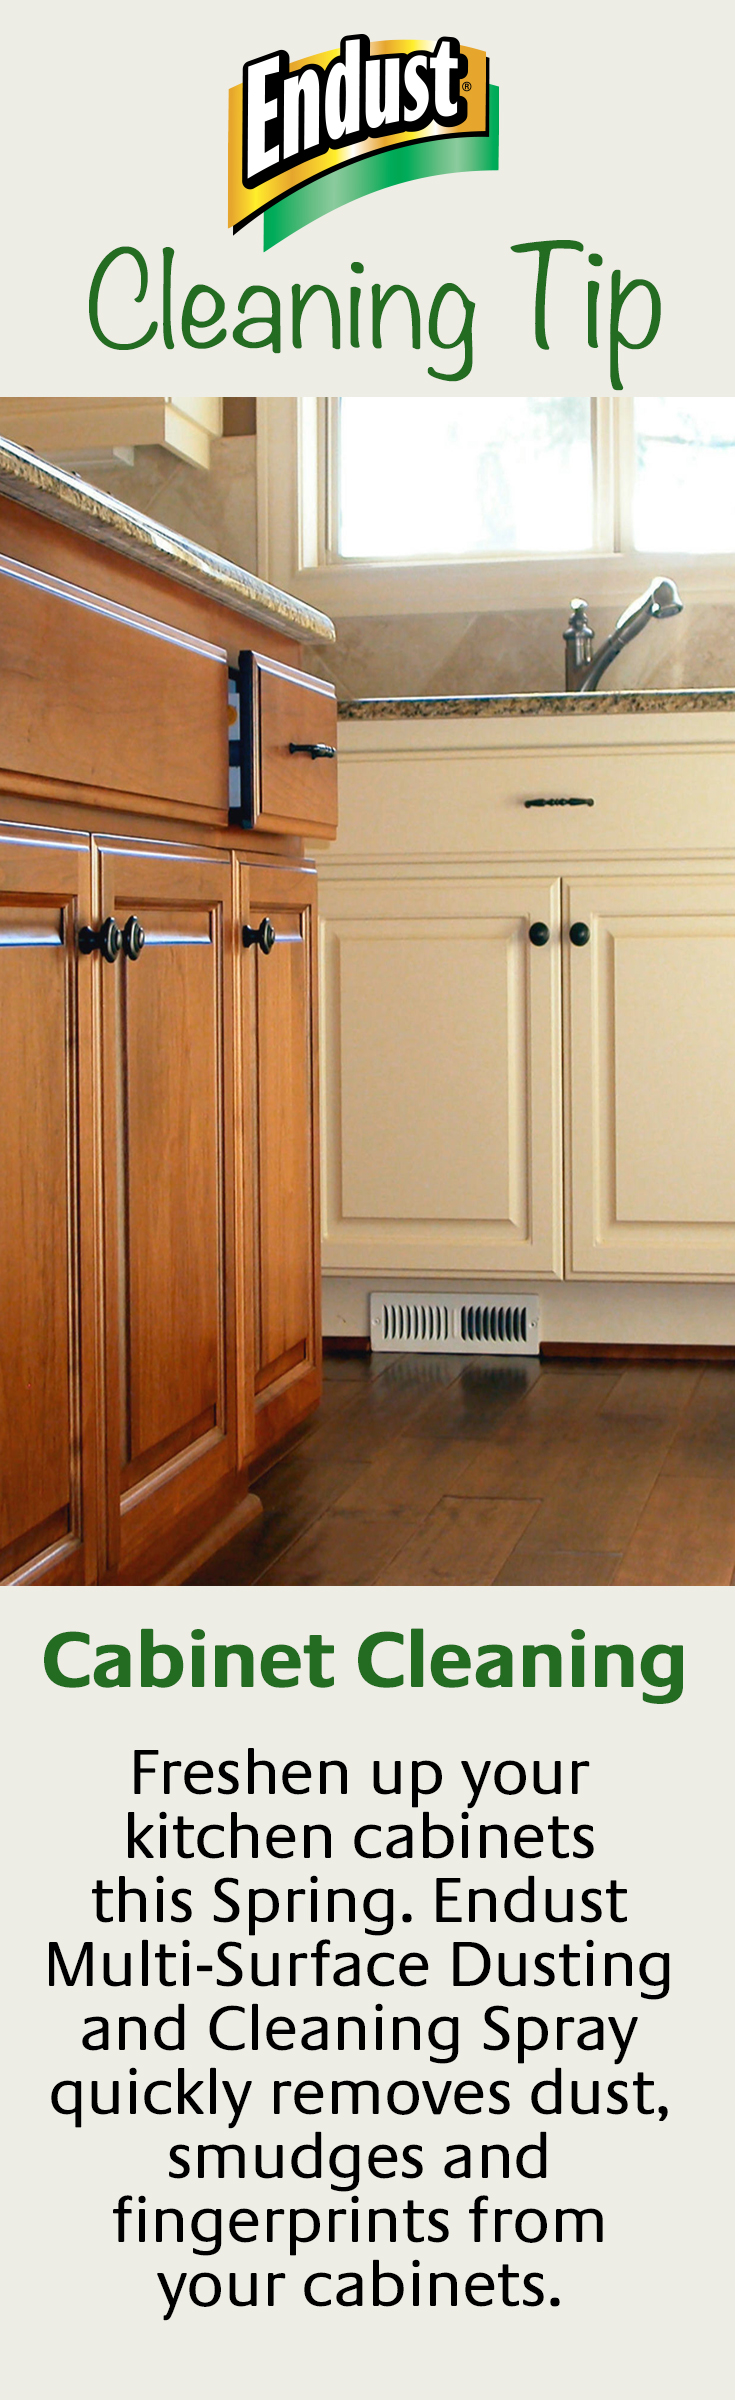 Give Your Kitchen Cabinets A Brand New Look With Endust Multi Purpose Spray Kitchen Cabinets Cleaning Spray Cleaning Dust